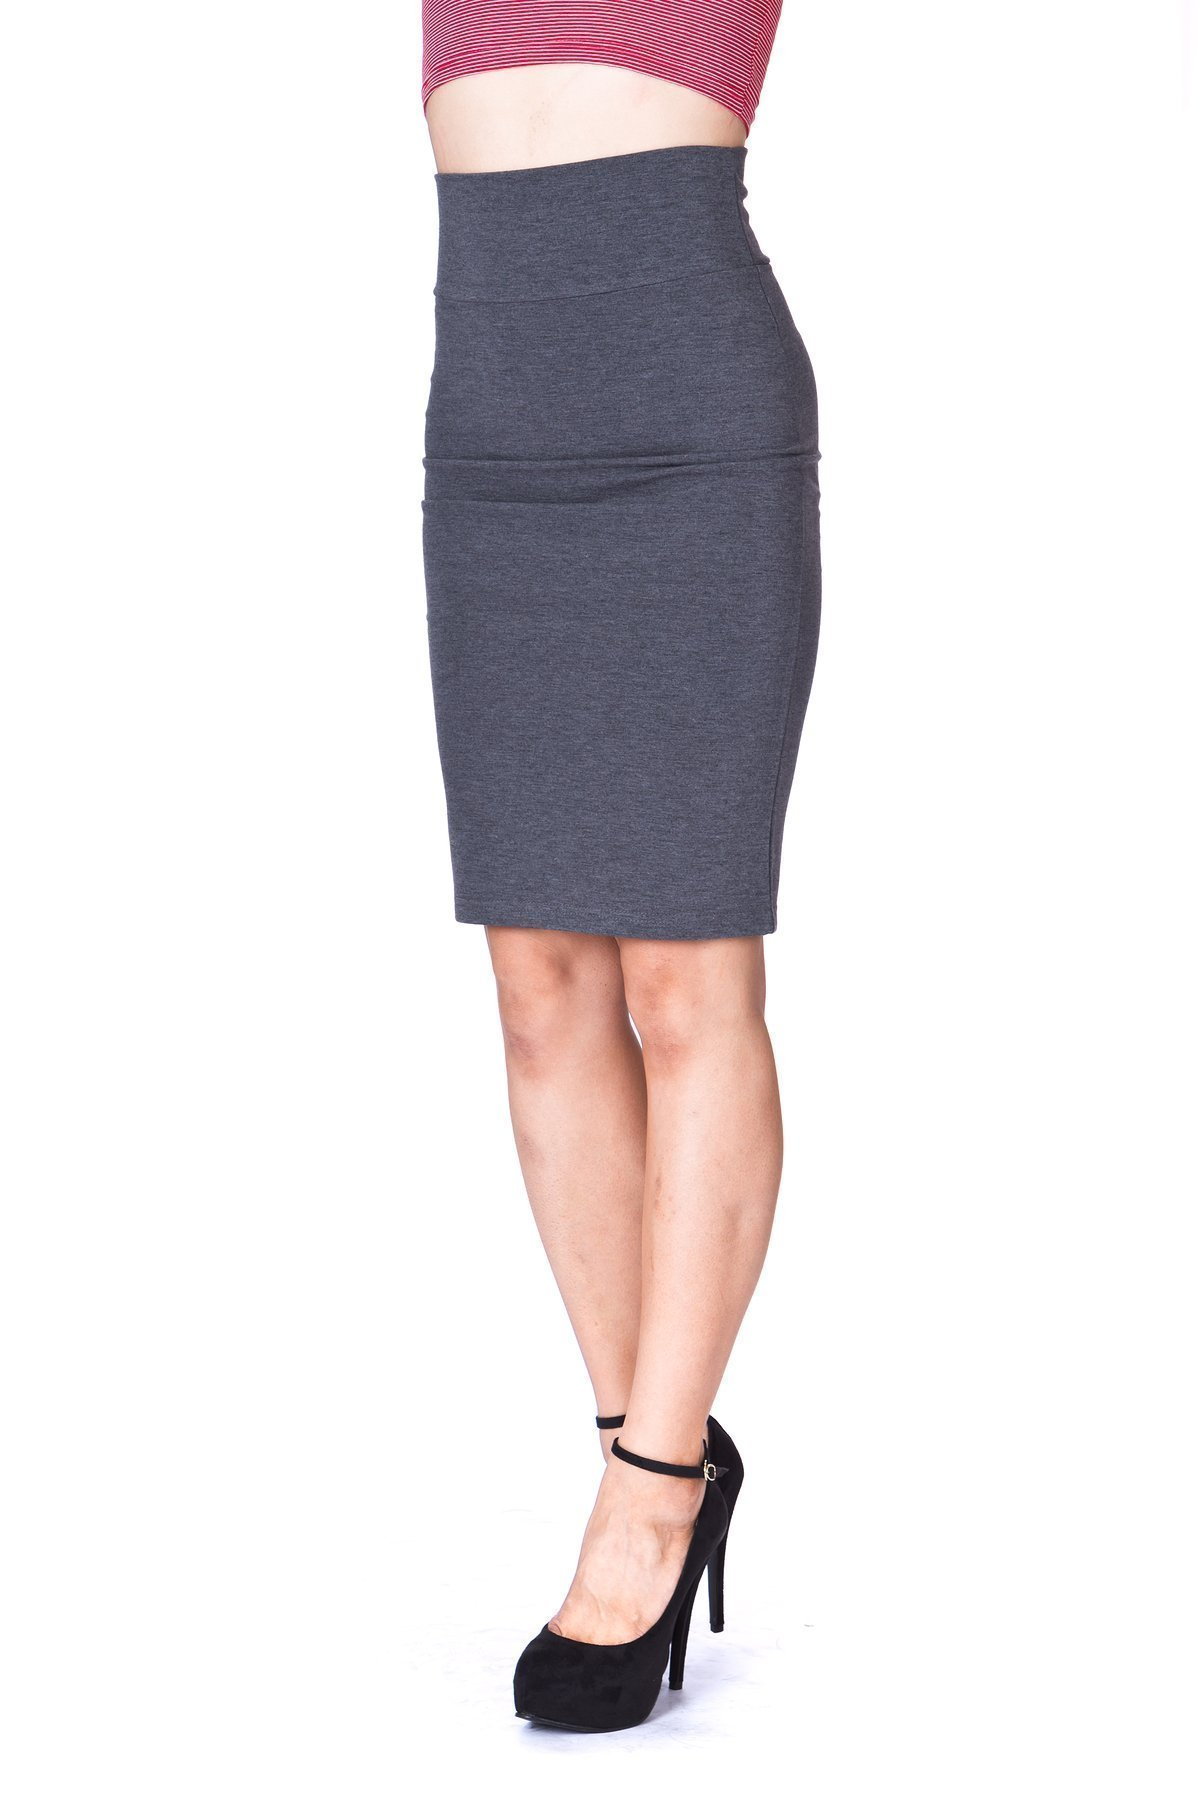 Every Occasion Stretch Pull on Wide High Waist Bodycon Pencil Knee Length Midi Skirt Charcoal 4 1